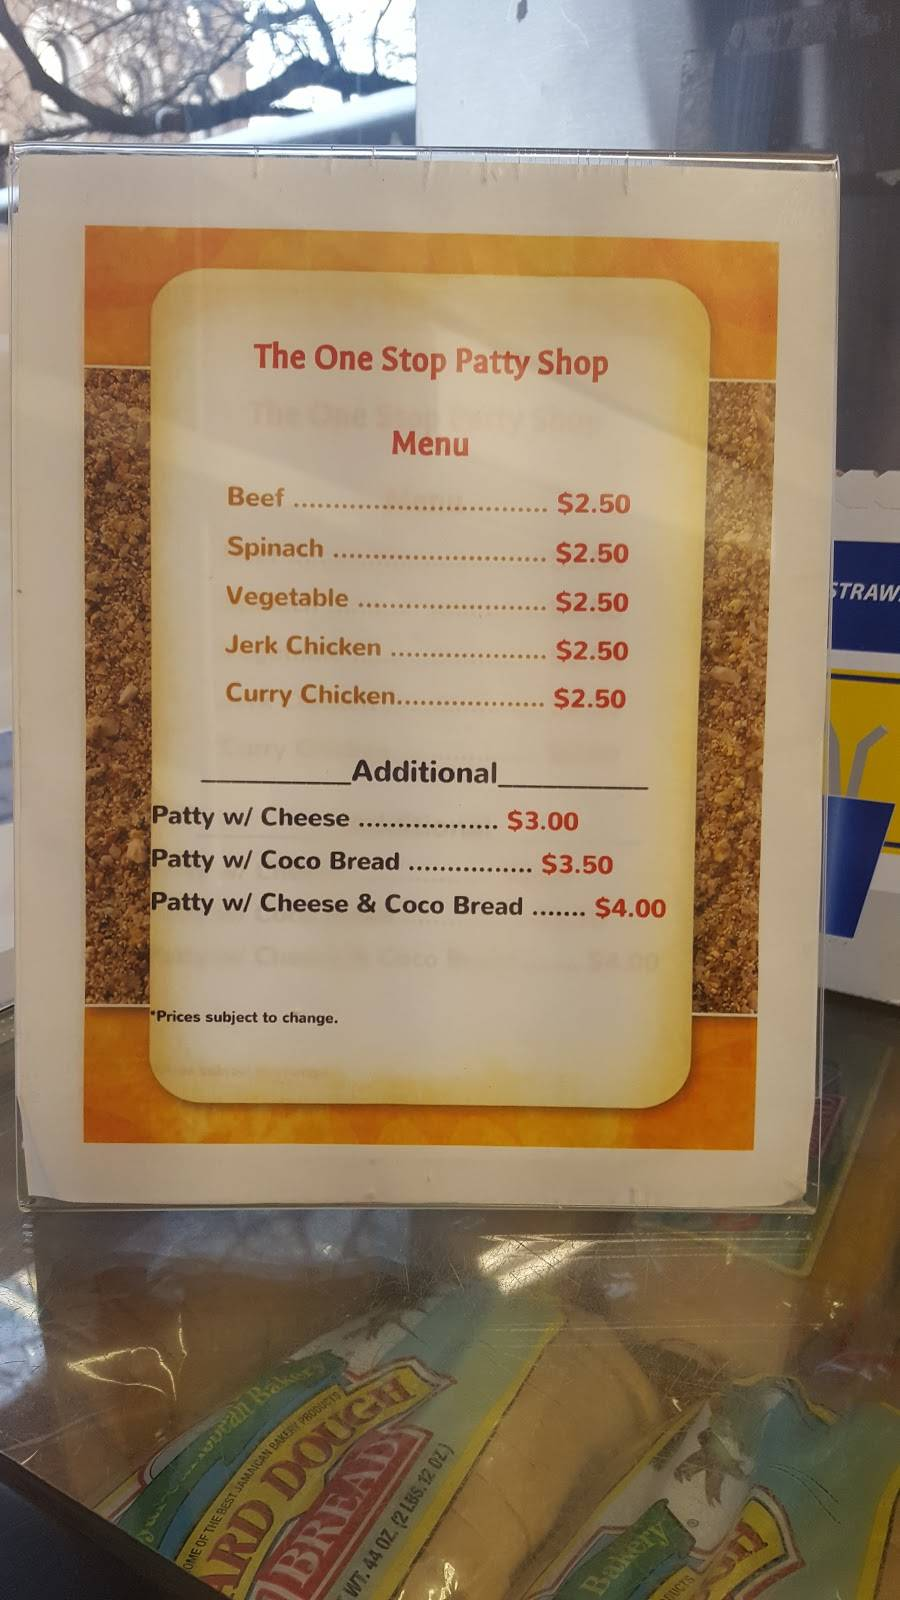 One Stop Patty Shop   restaurant   1708 Amsterdam Ave, New York, NY 10031, USA   2124917466 OR +1 212-491-7466